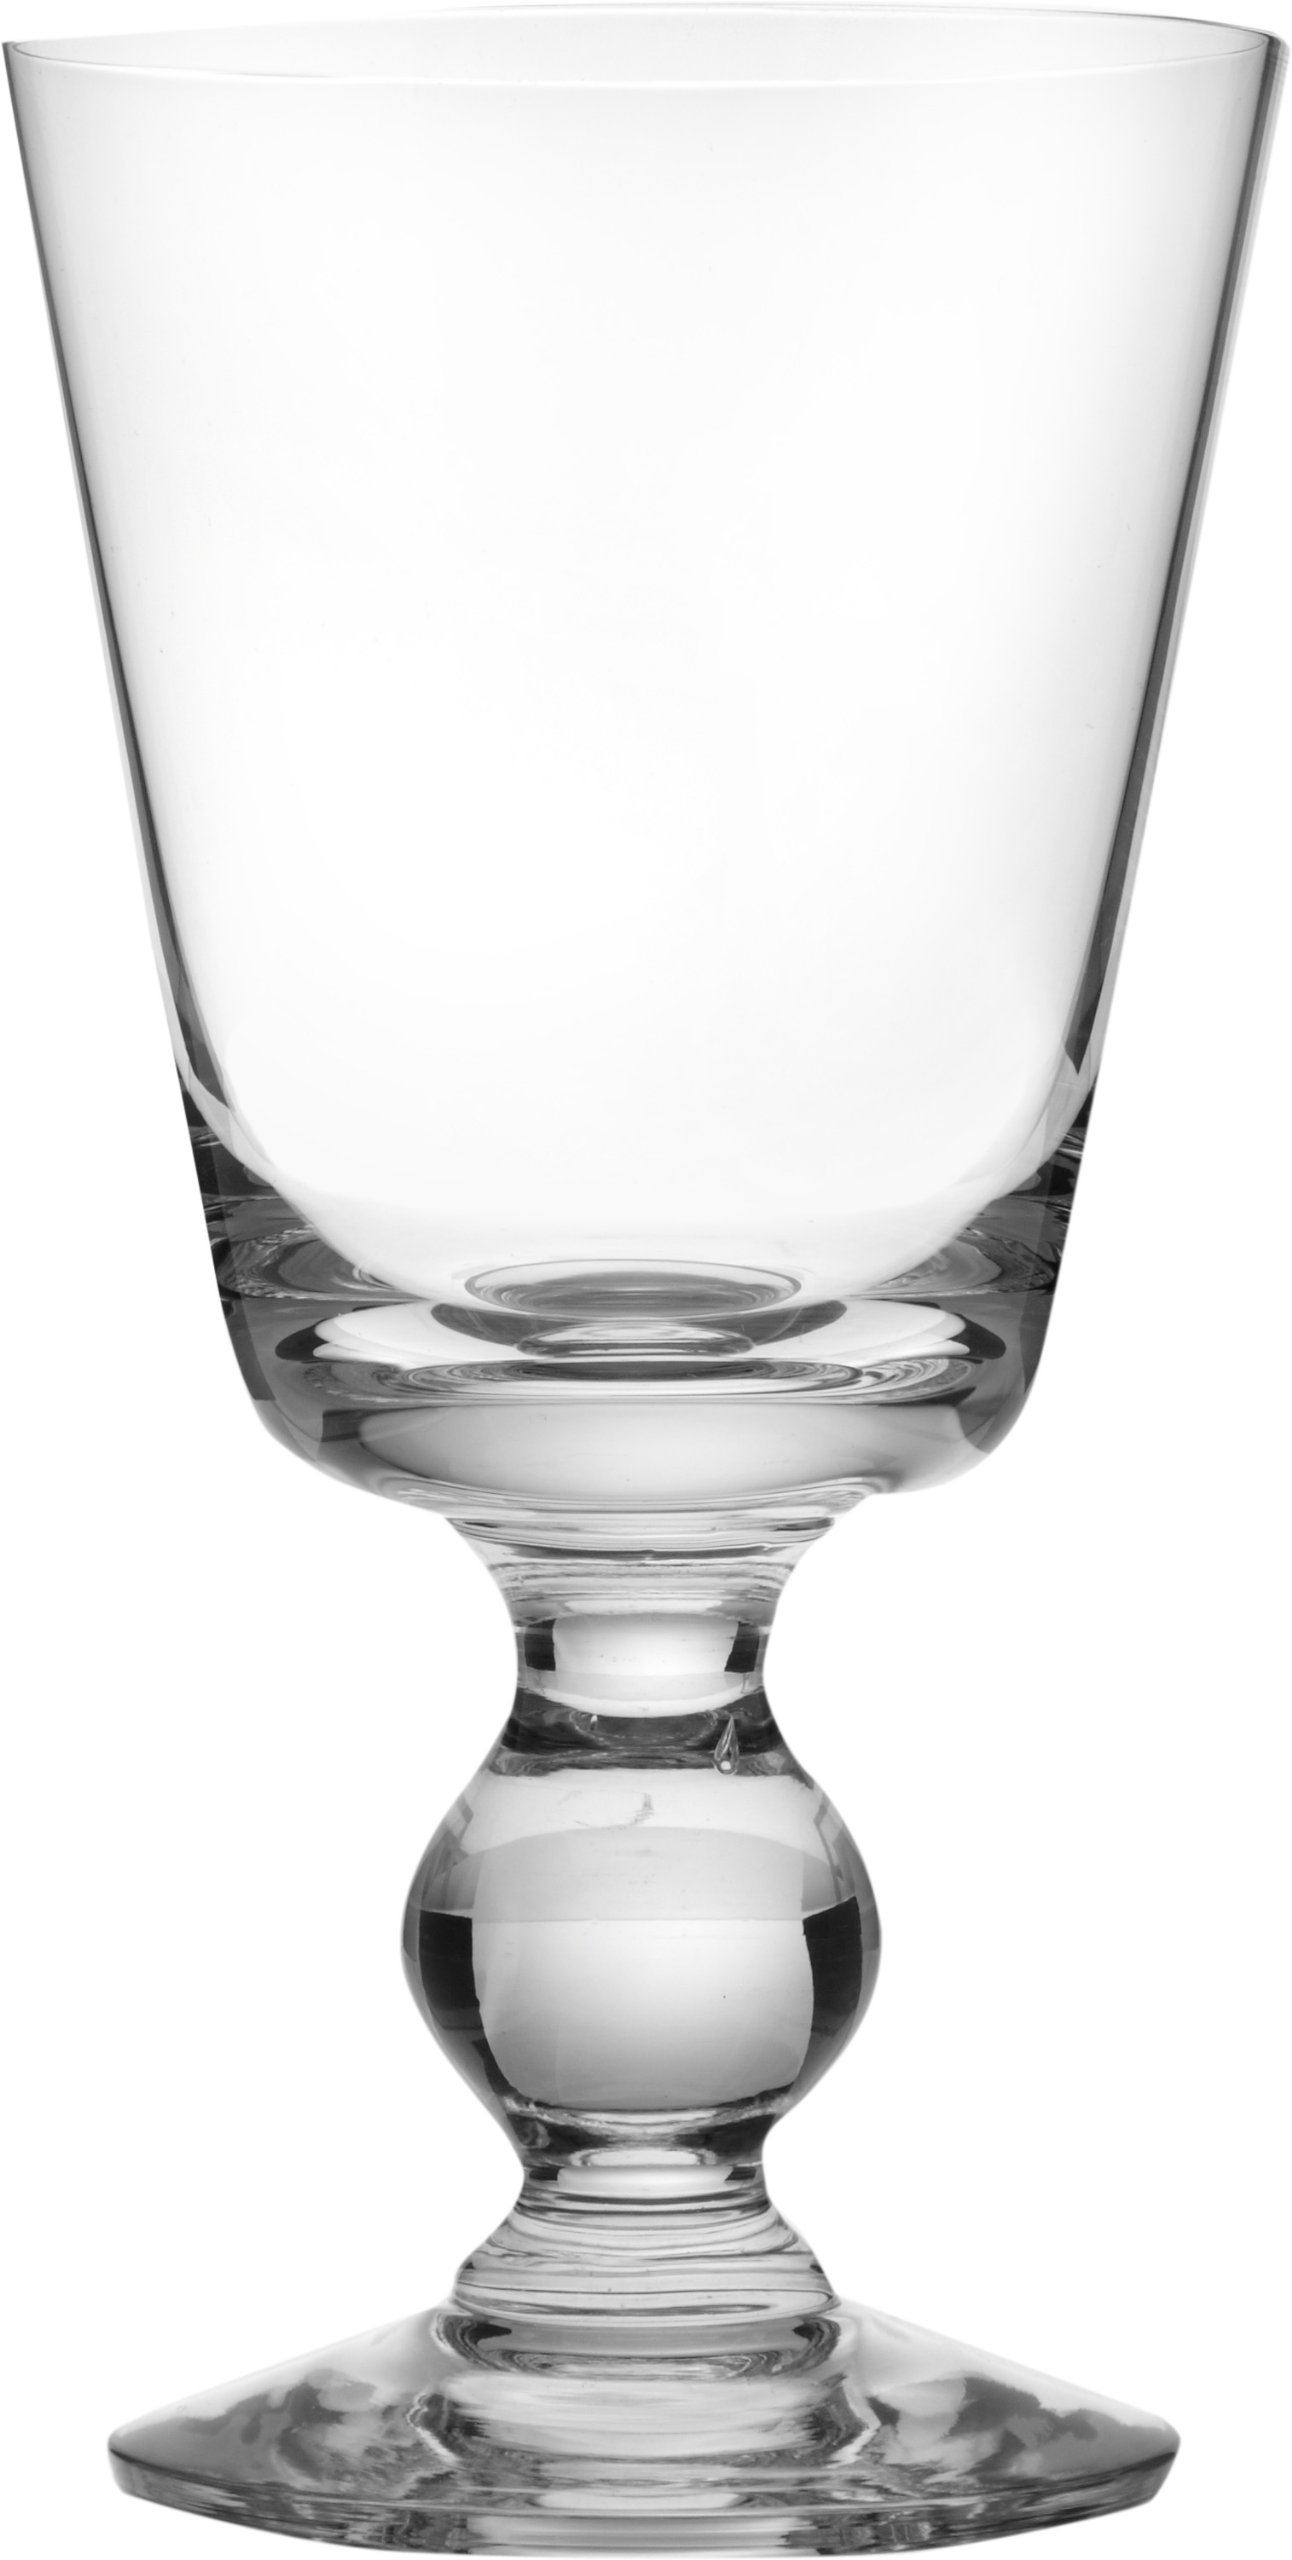 La Rochere Set Of 6, 8.5-ounce Bocage Mouth Blown Wine Glasses by La Rochere